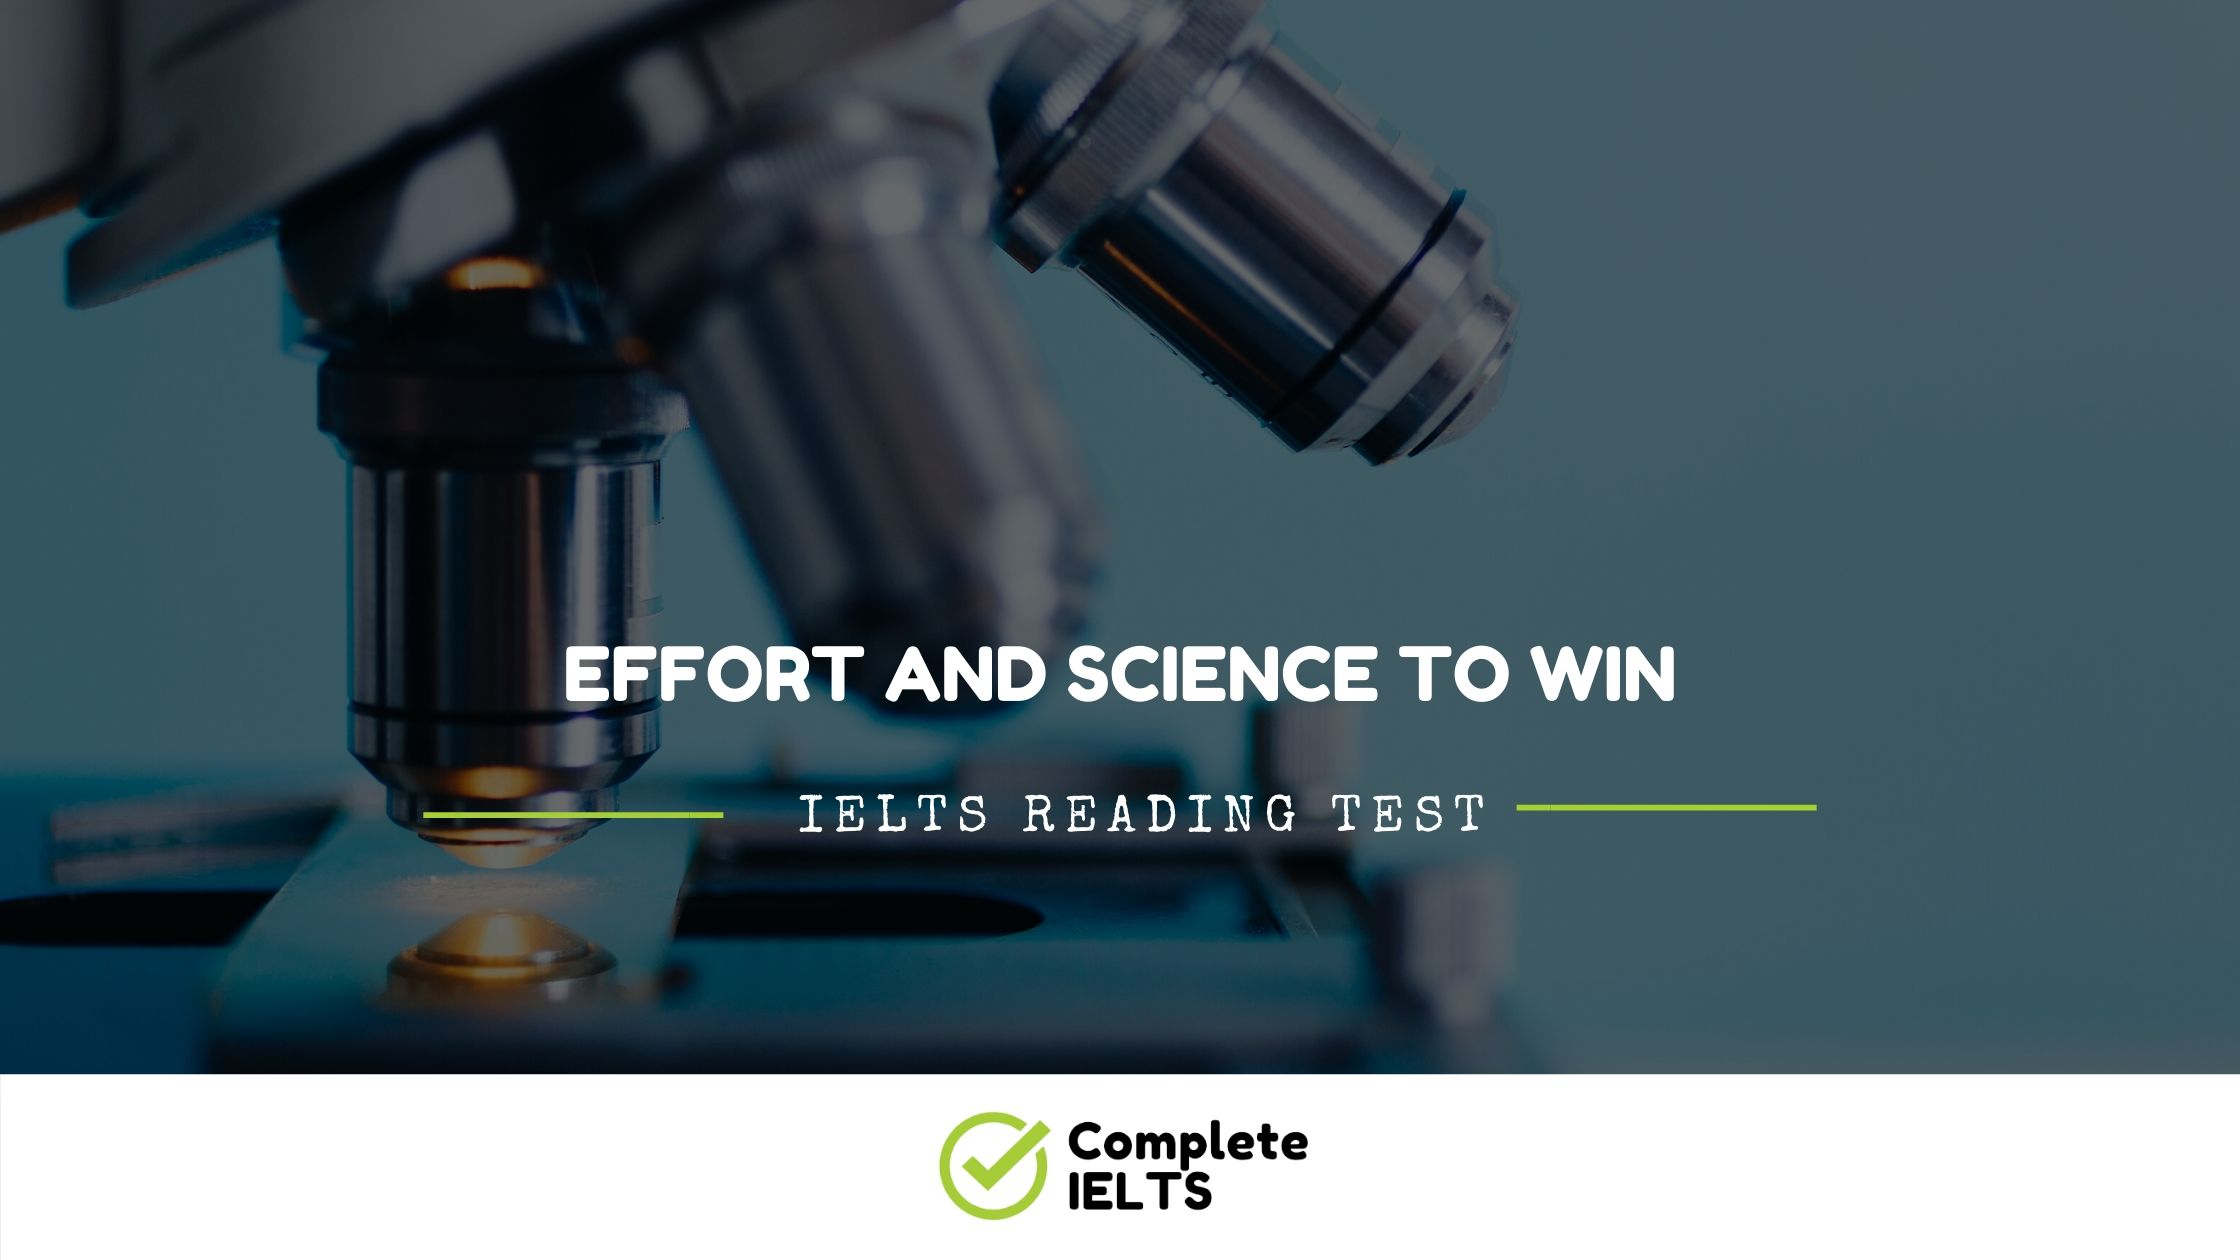 EFFORT AND SCIENCE TO WIN